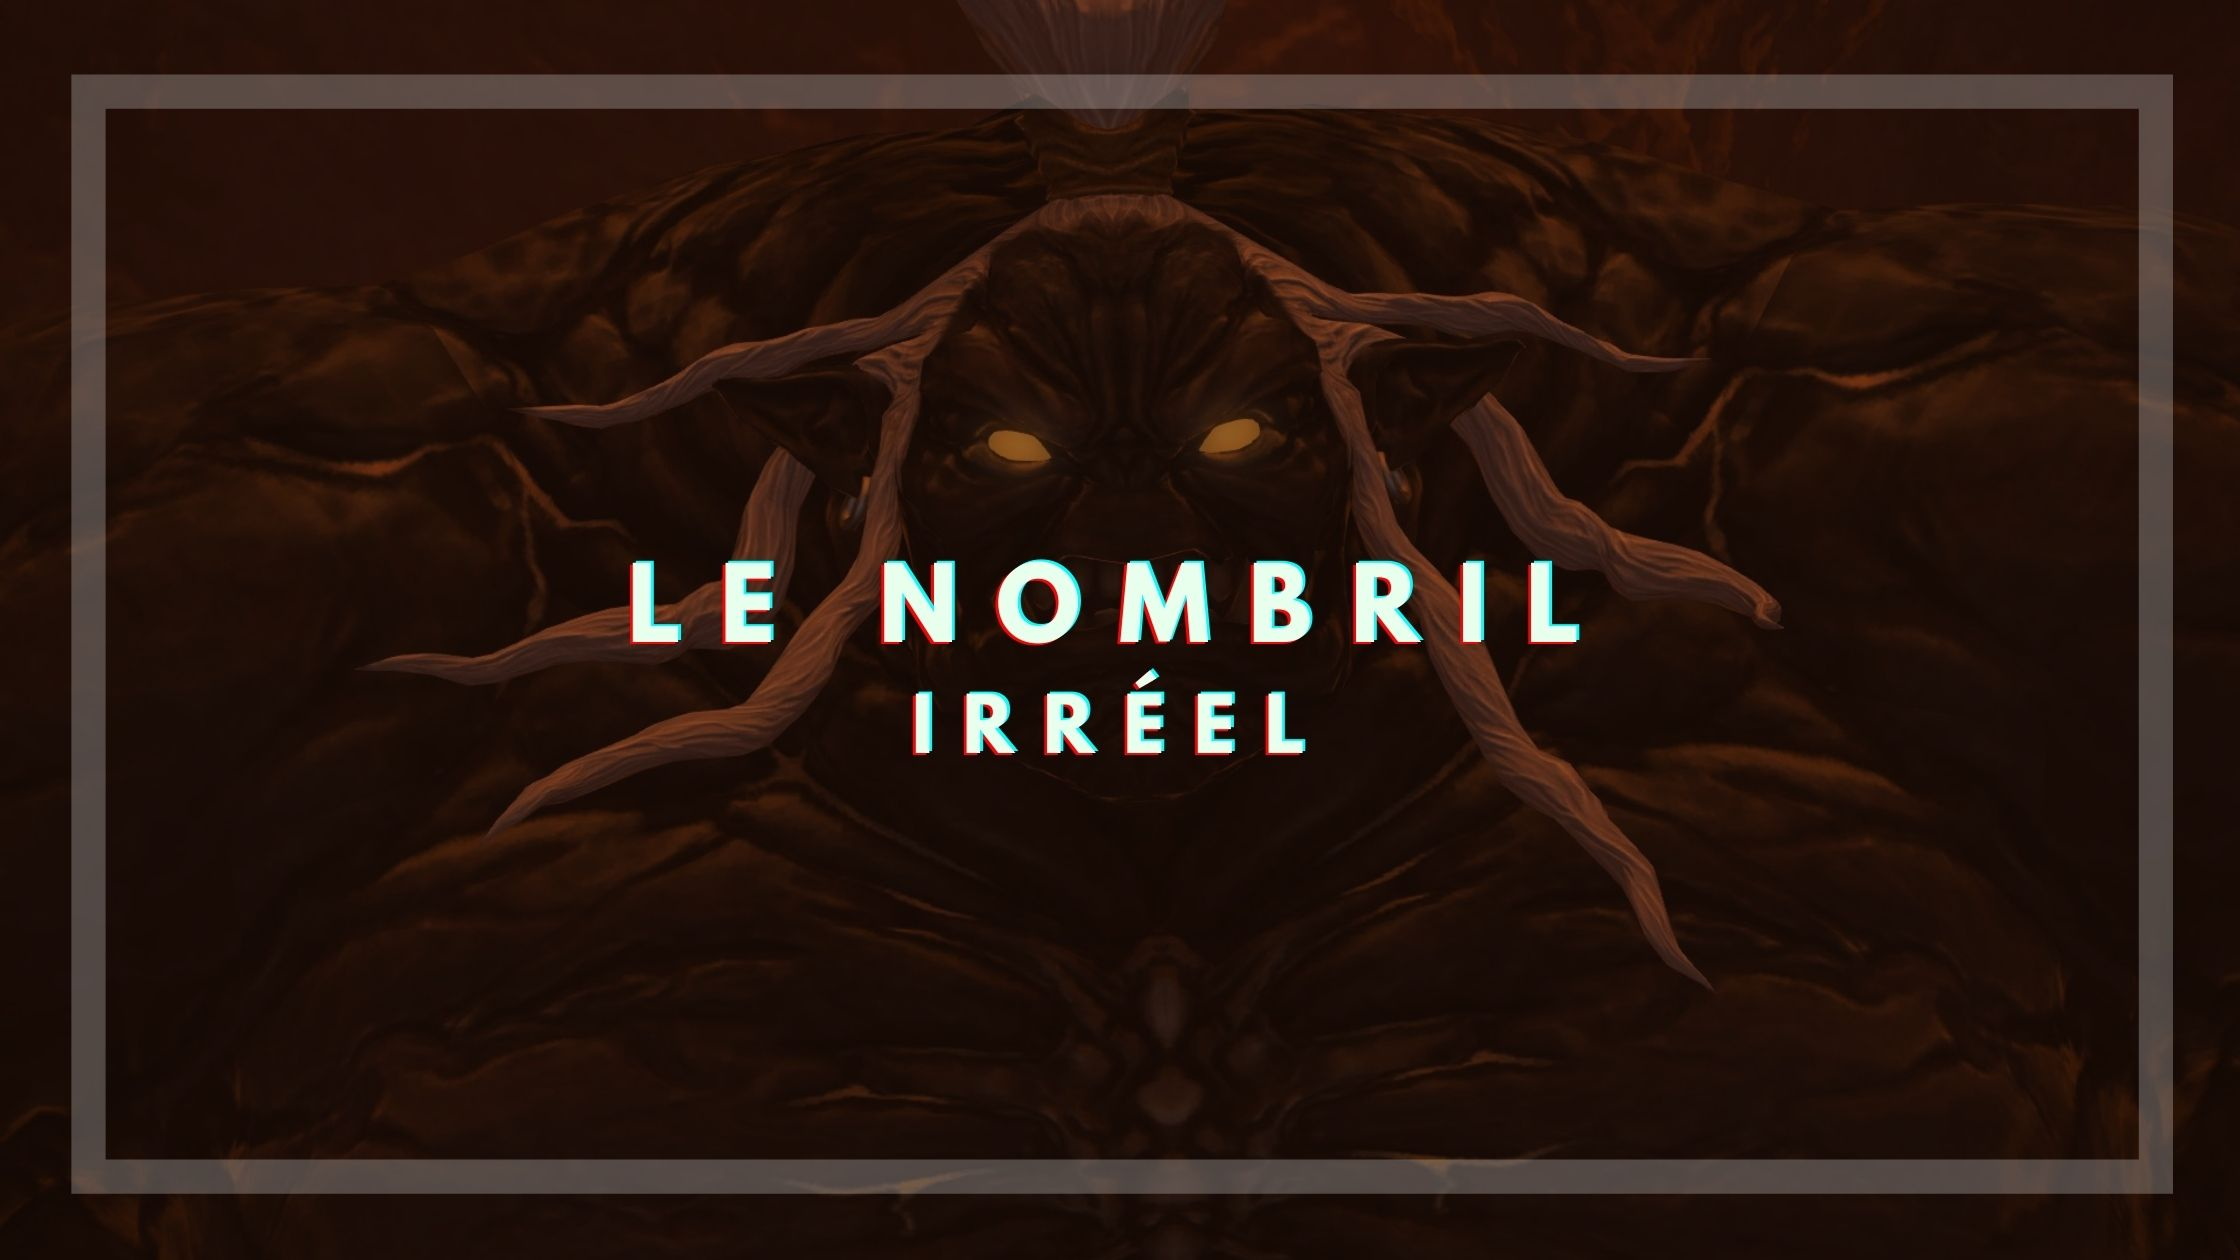 Le nombril - Titan Irréel Illustration